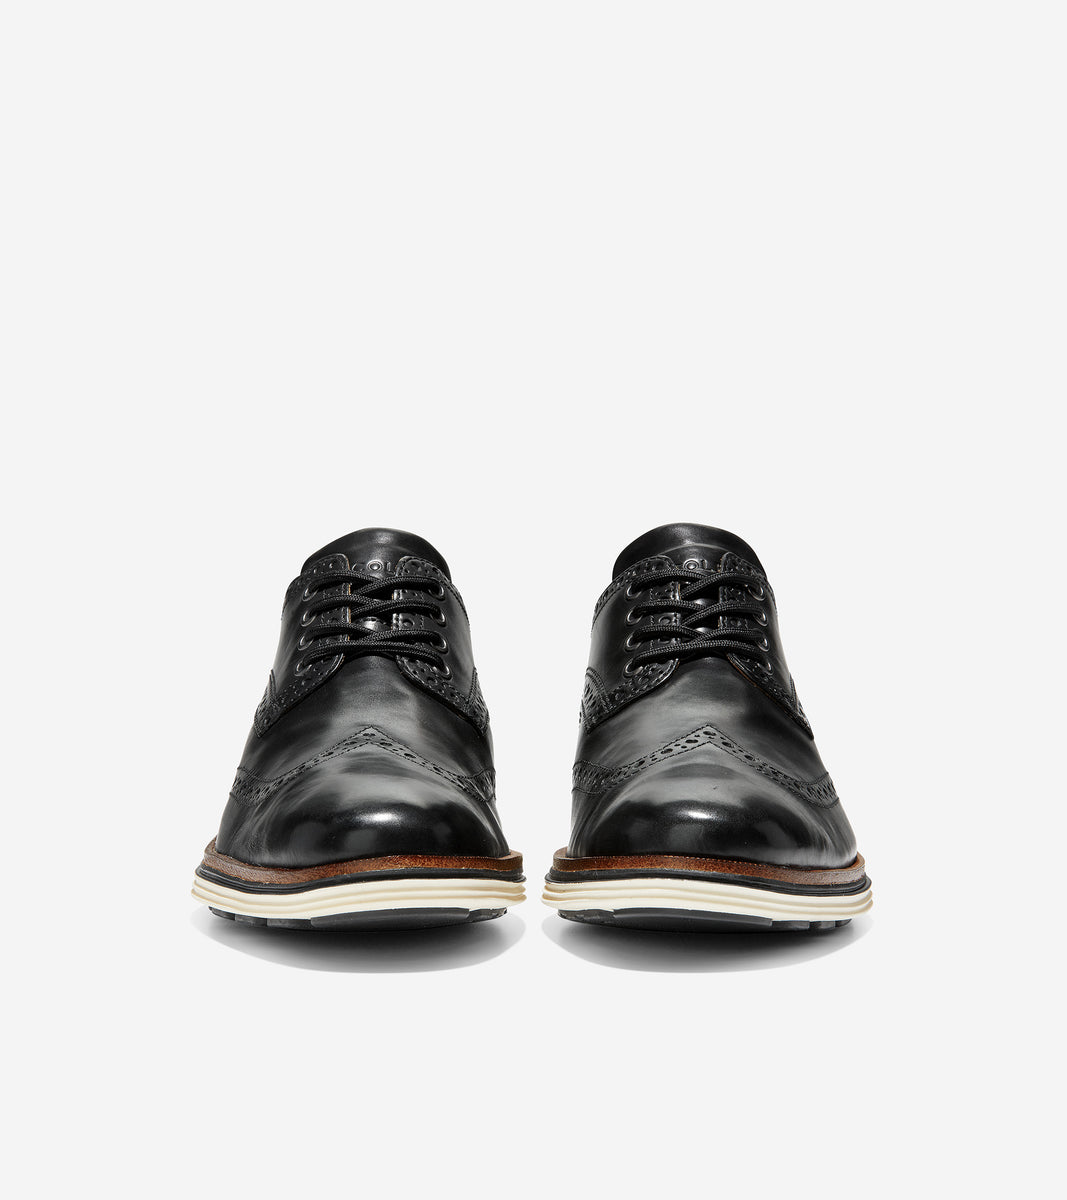 ØriginalGrand Lux Wingtip Oxford